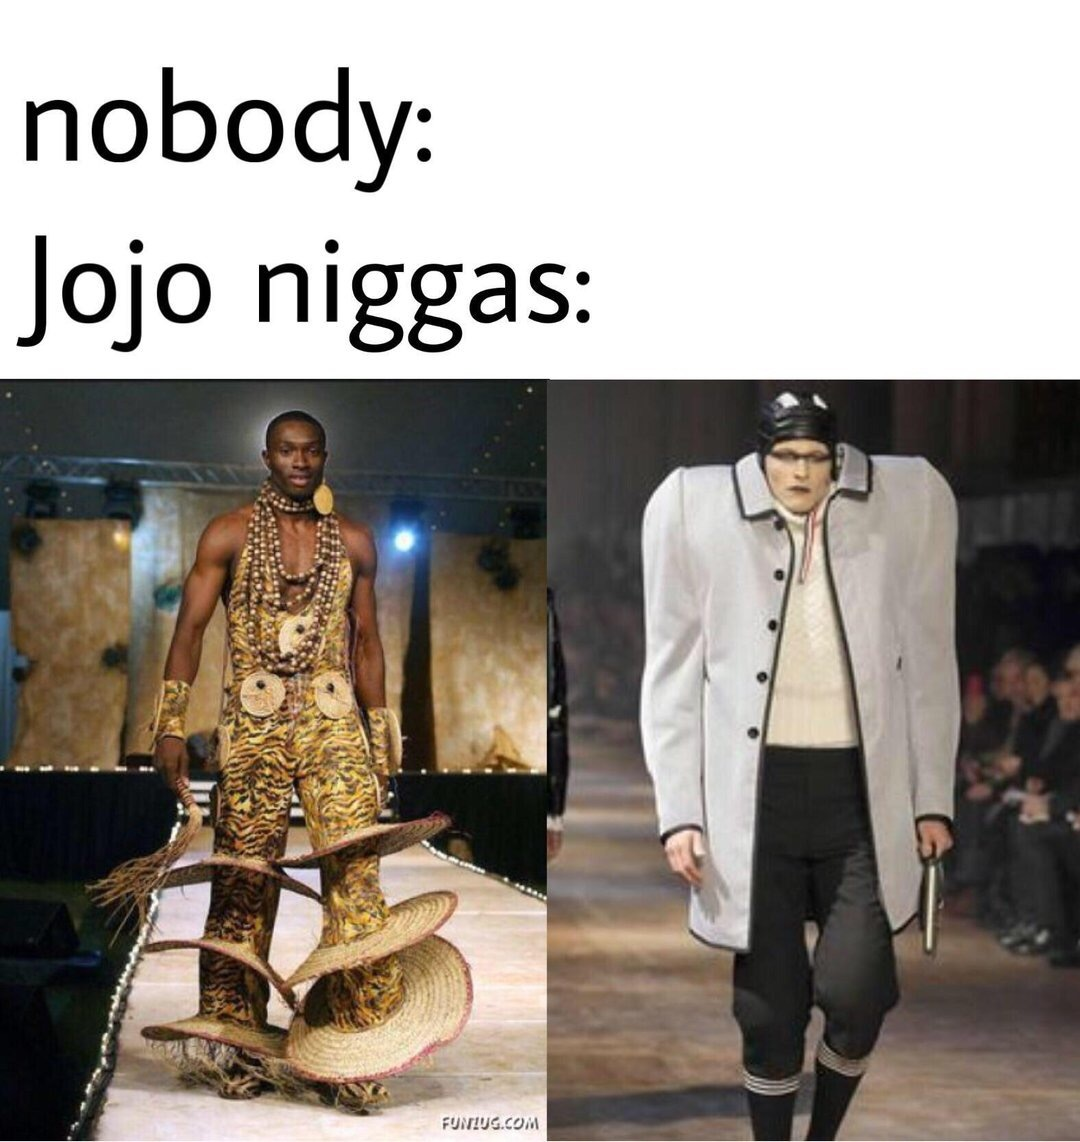 Fun fact Araki worked with Gucci - meme